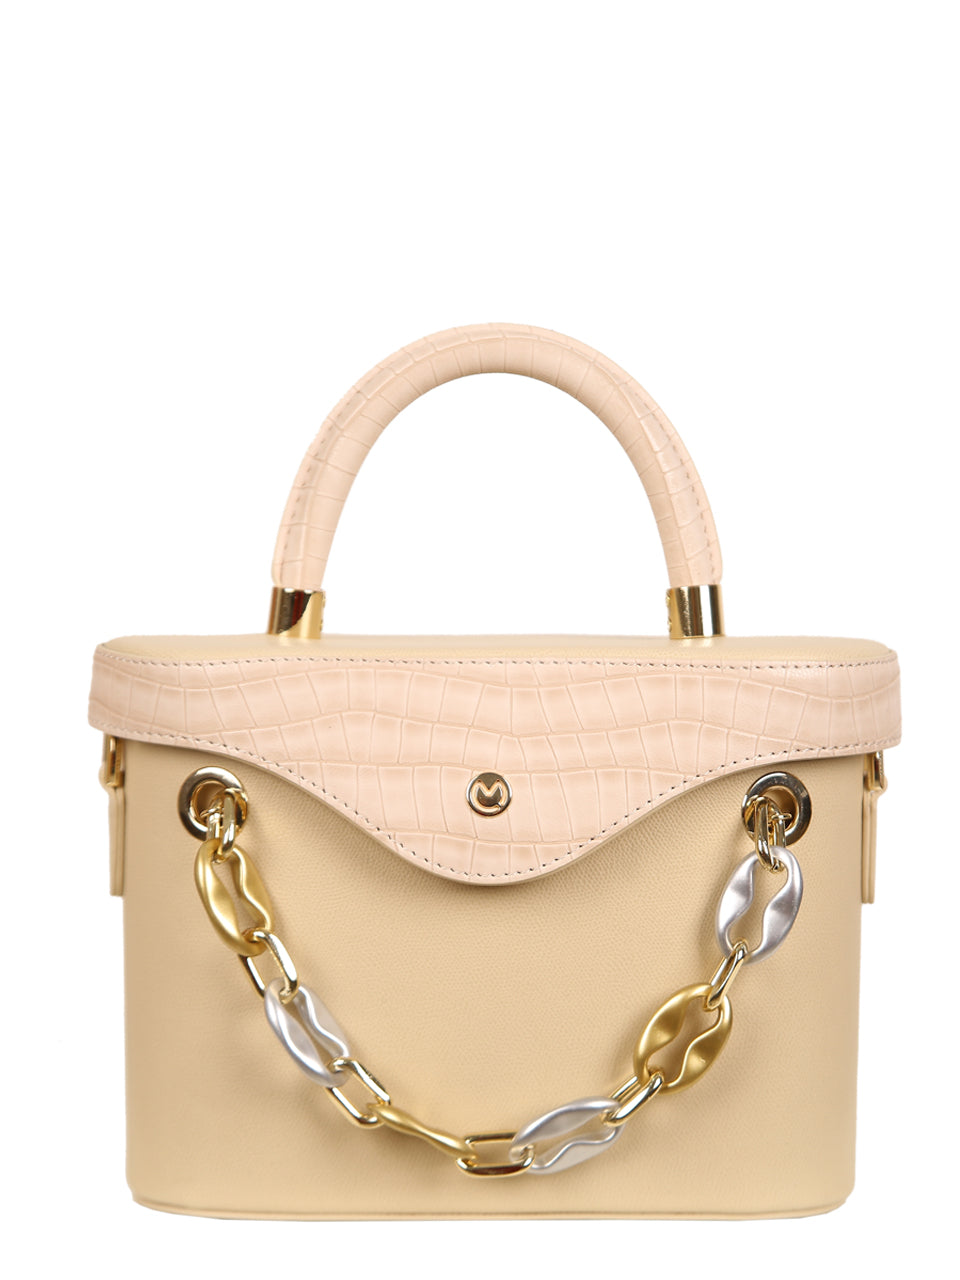 Mademoiselle Ginny Hand and Shoulder Bag - Beige